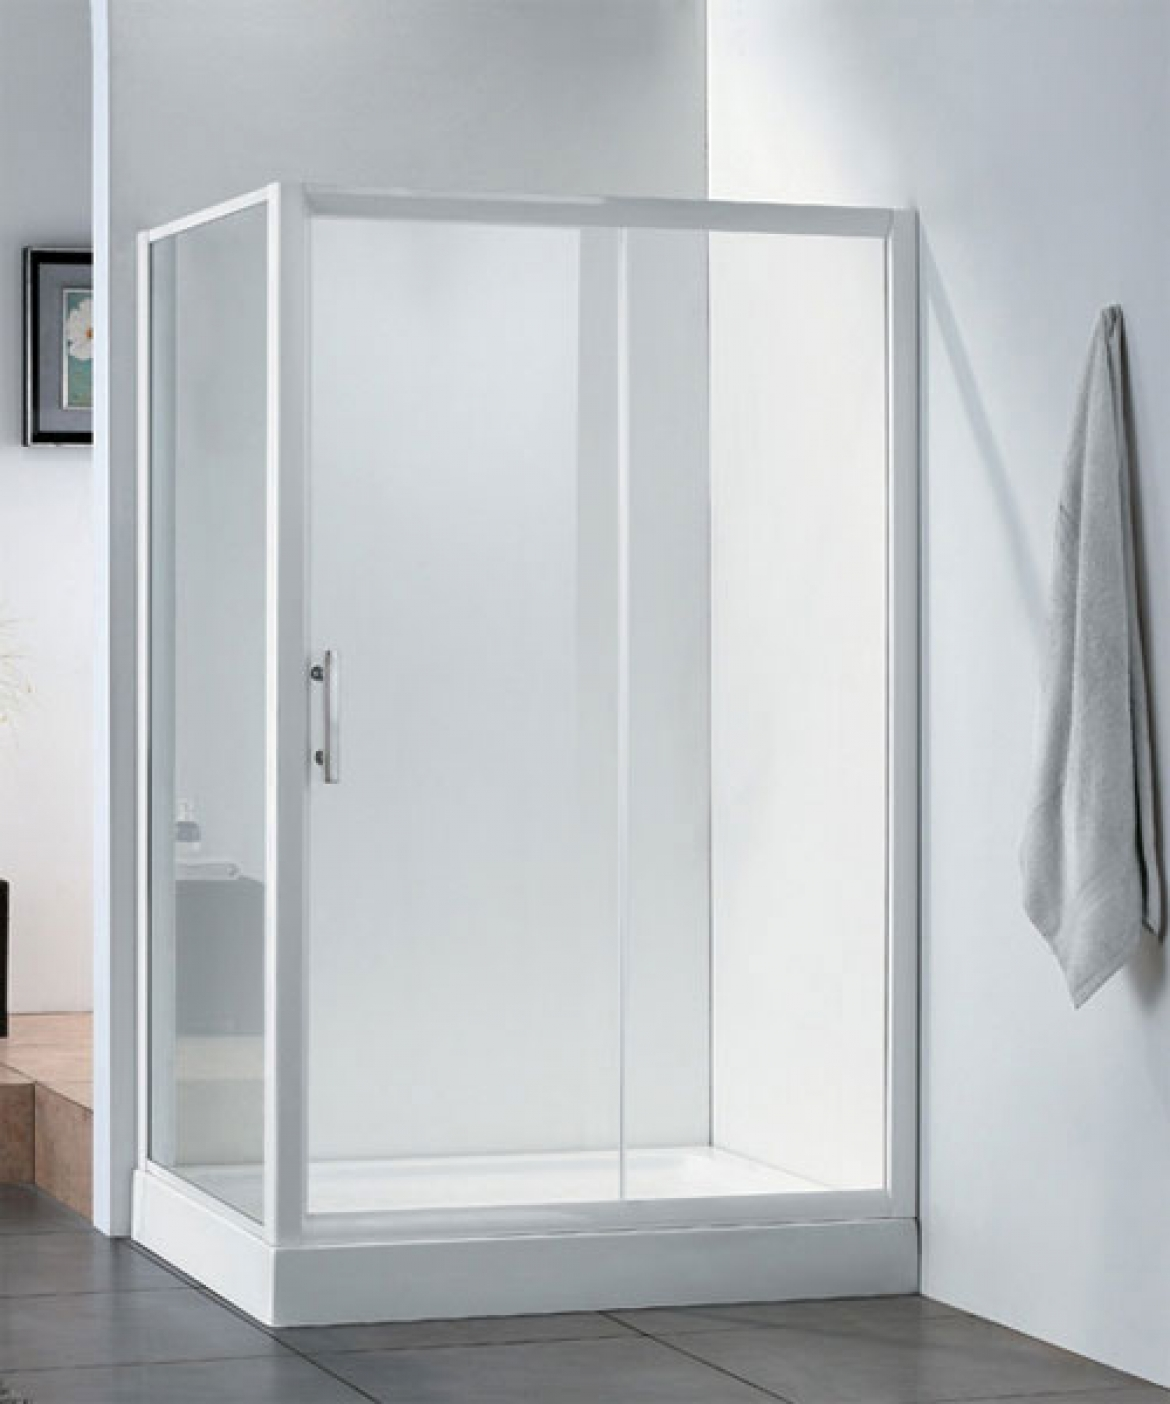 Shower screen   Base  Framed  sliding door